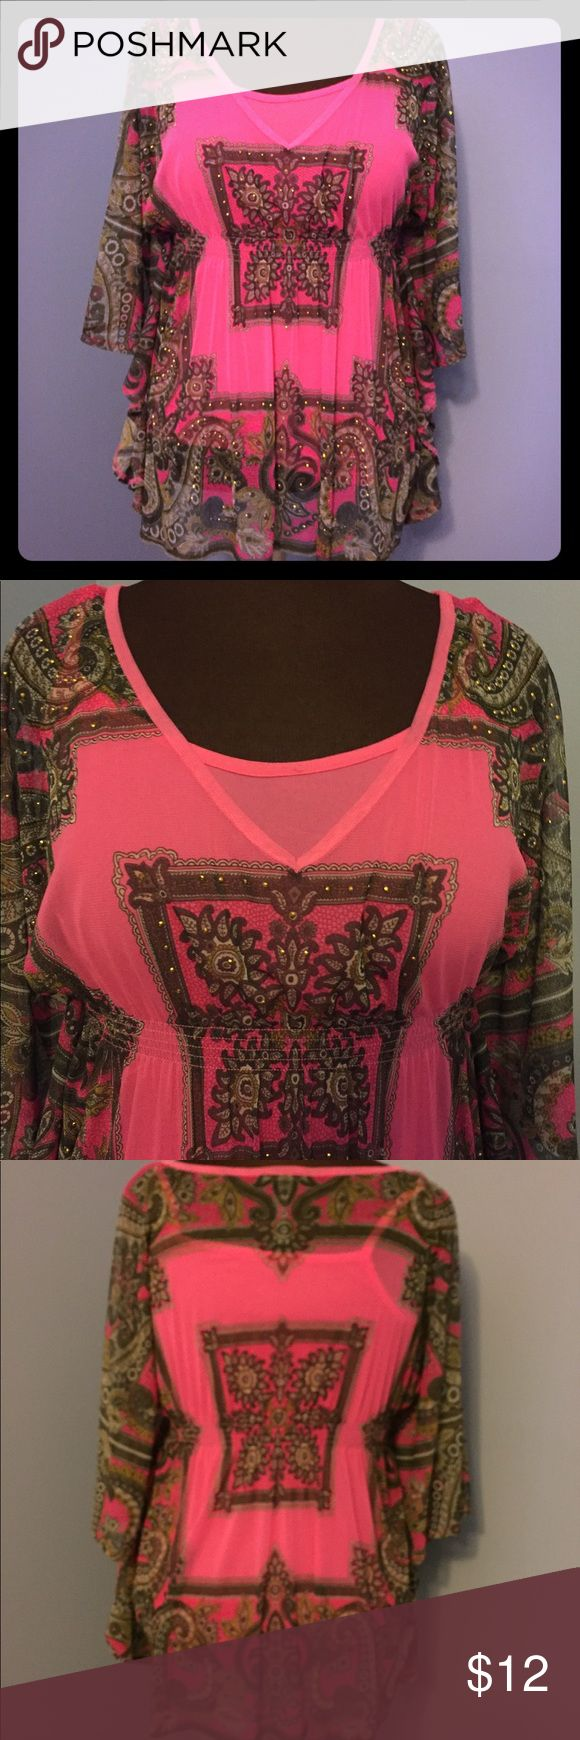 INC Batwing Tunic This shirt from INC is perfect resort wear. Wear with white jeans or white capris.  Fusia pink scarf-like material with a paisley inspired design, embellished with little gold-tone studs, bat sleeves and attached fuscia pink cami underneath.  Petite medium size. Tops Tunics